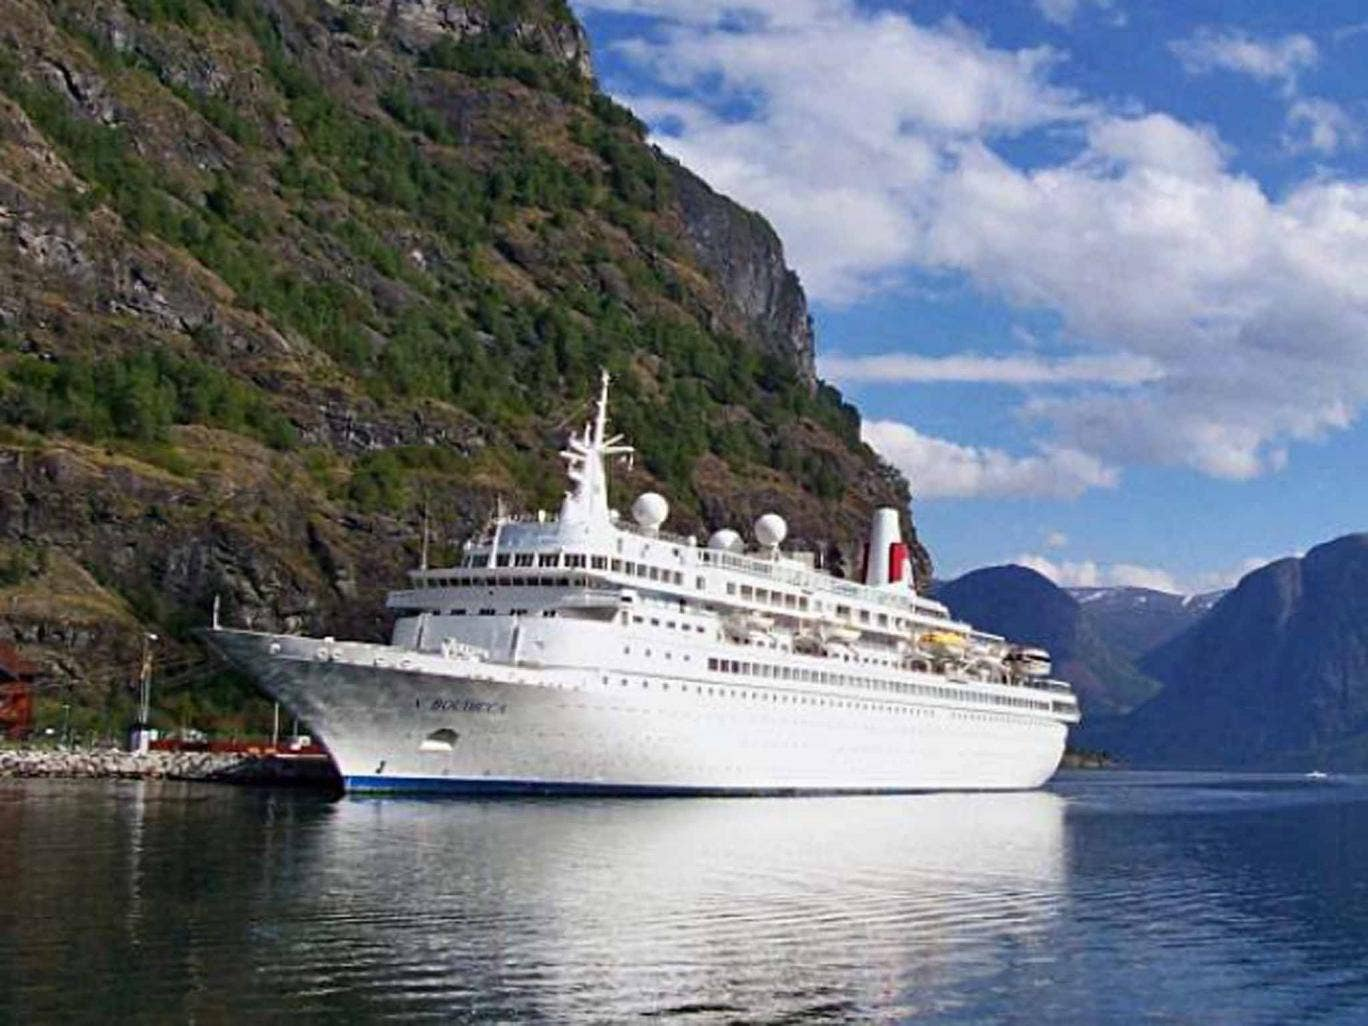 There are still summer cruises available in Europe